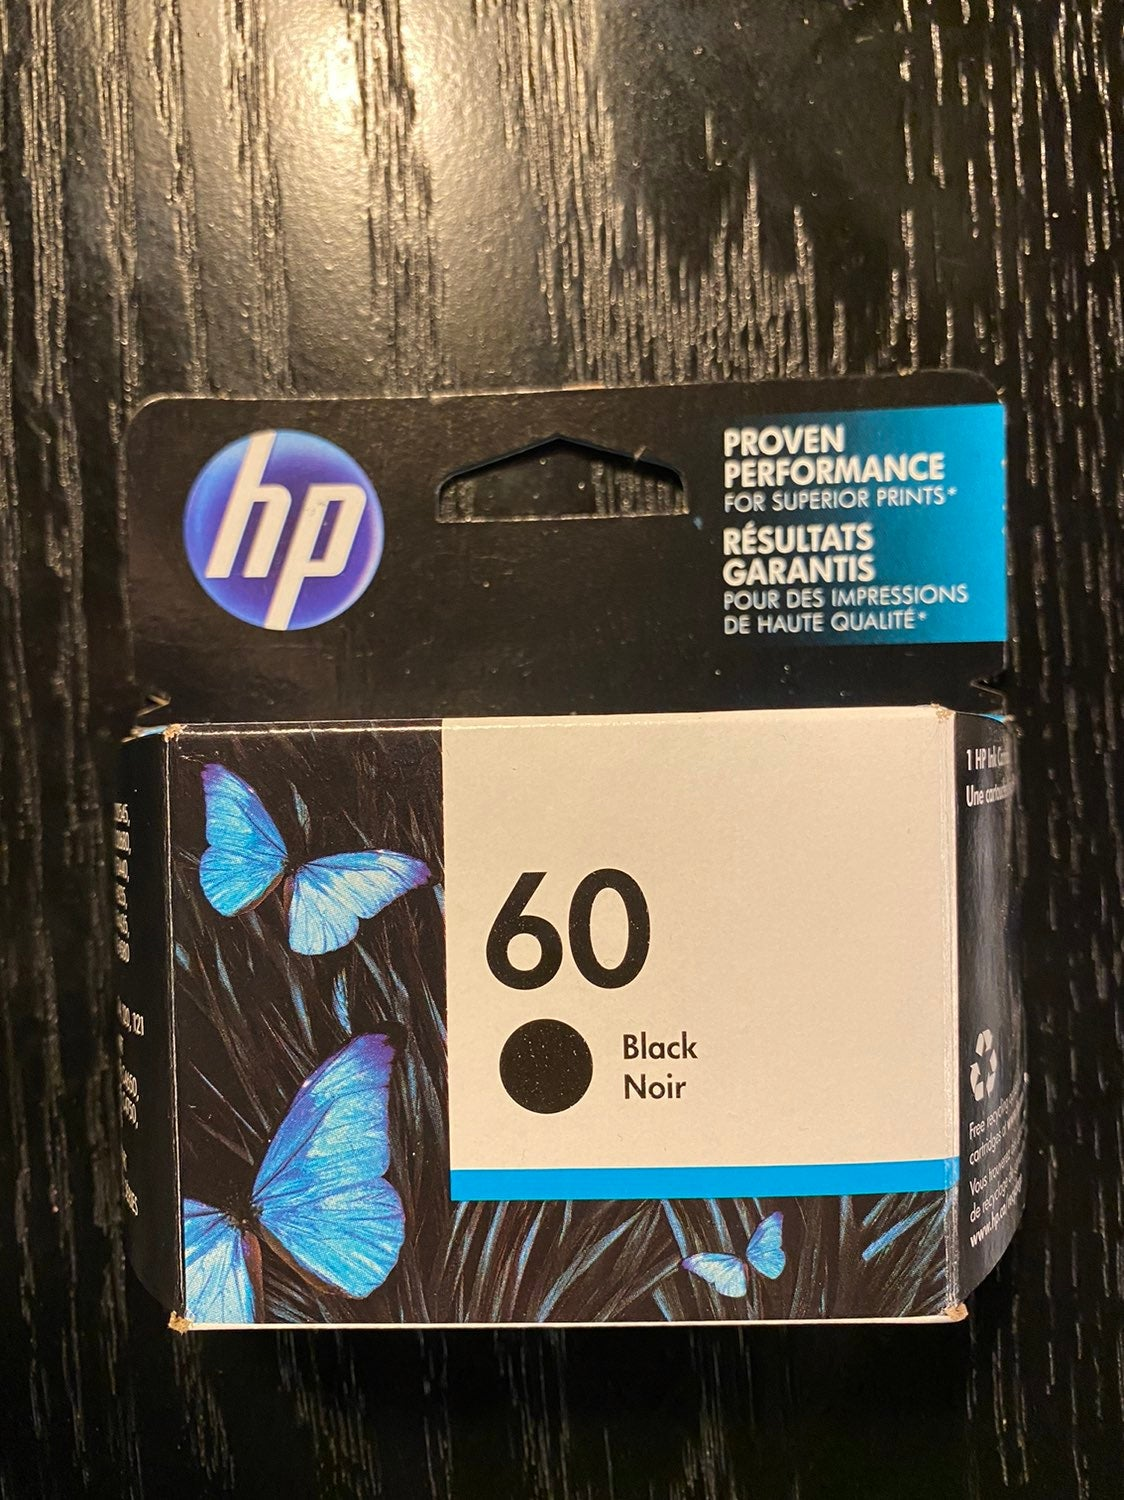 HP 60 Original Ink Cartridge in Black